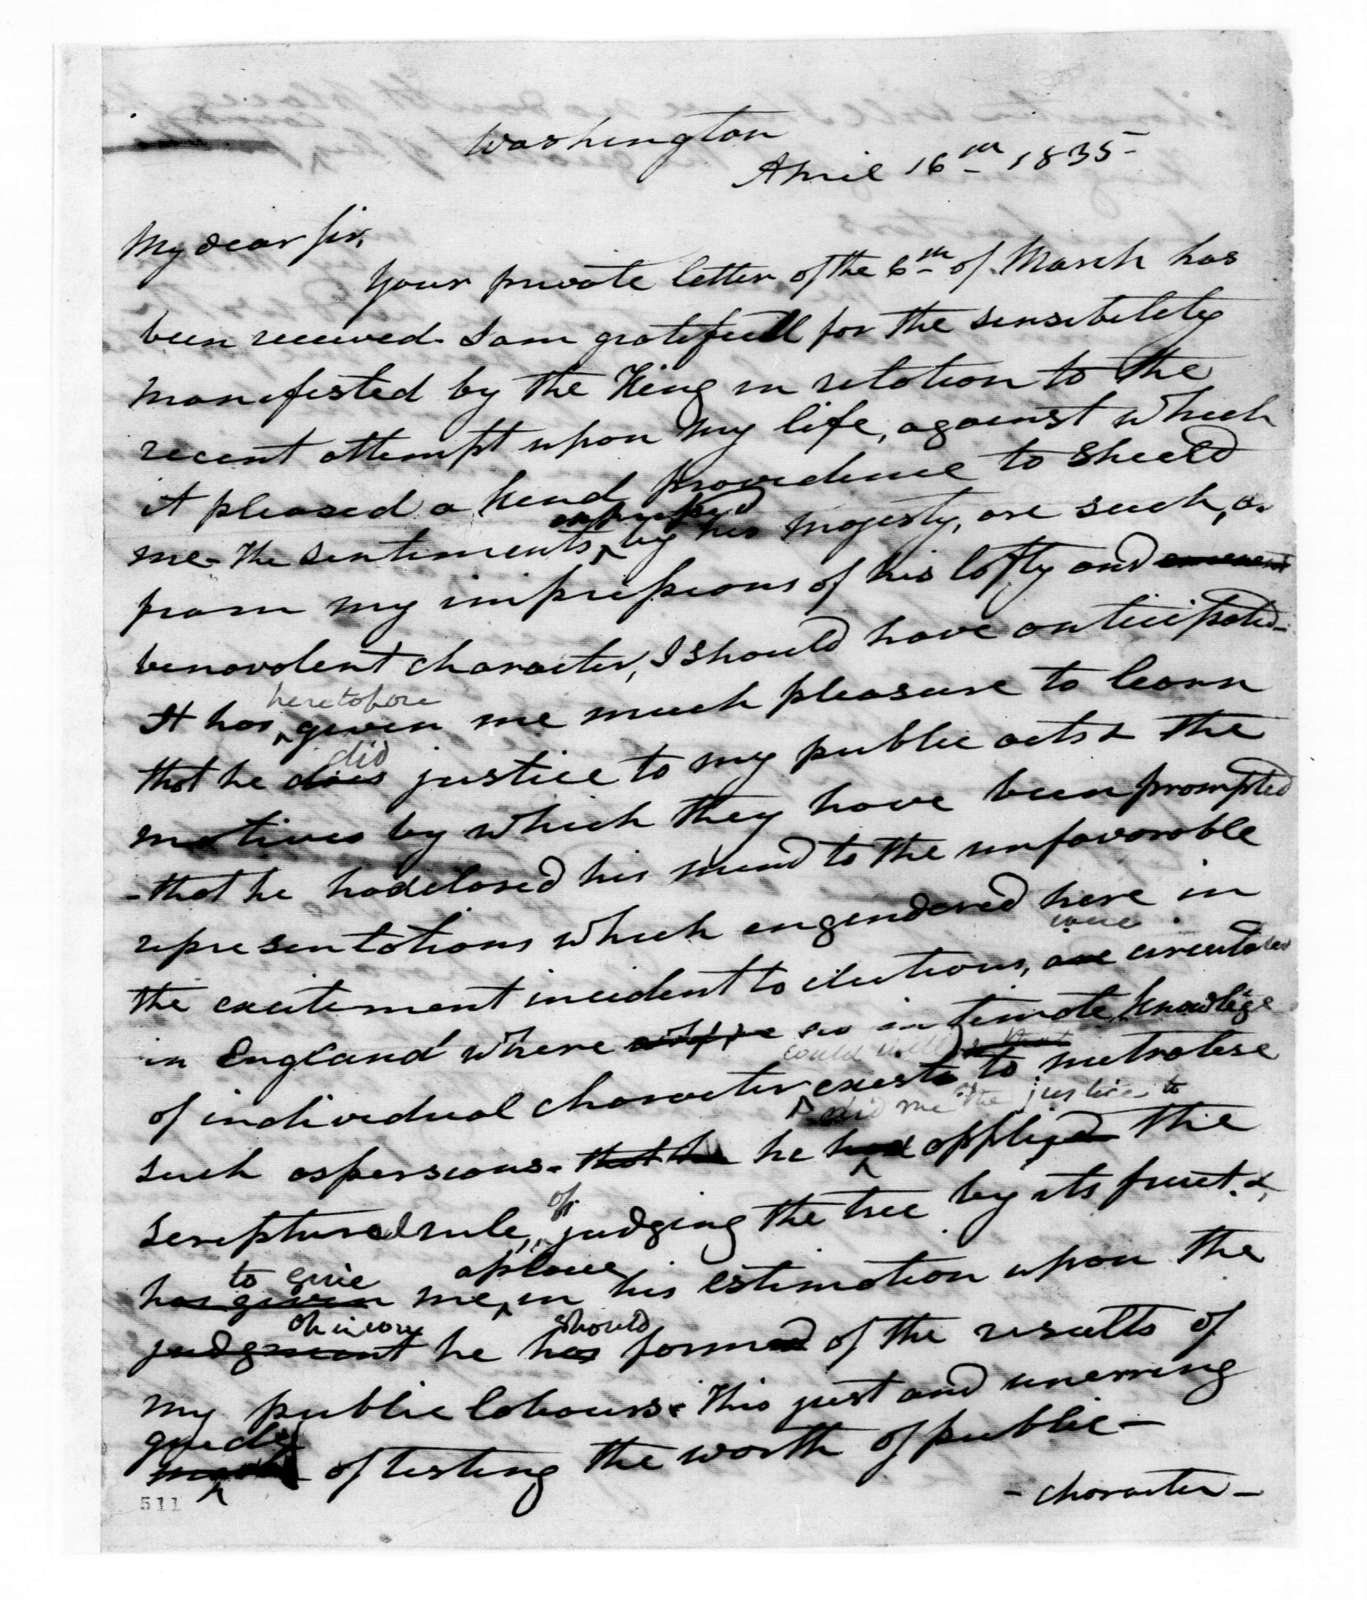 Andrew Jackson to Aaron Vail, April 16, 1835